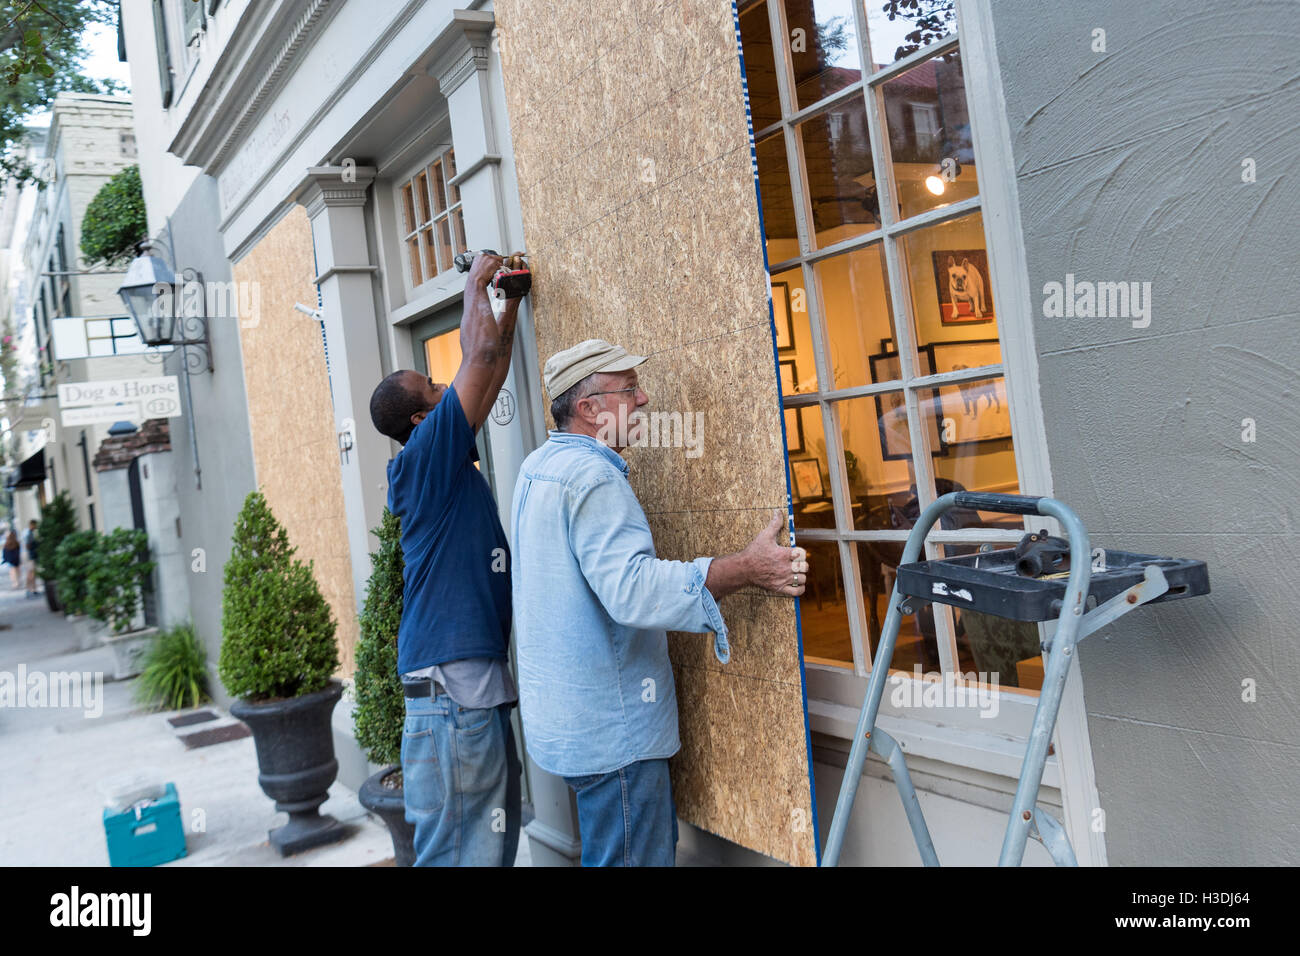 Charleston, South Carolina. 5th October, 2016. Workers board up the windows of an art gallery along Church Street - Stock Image